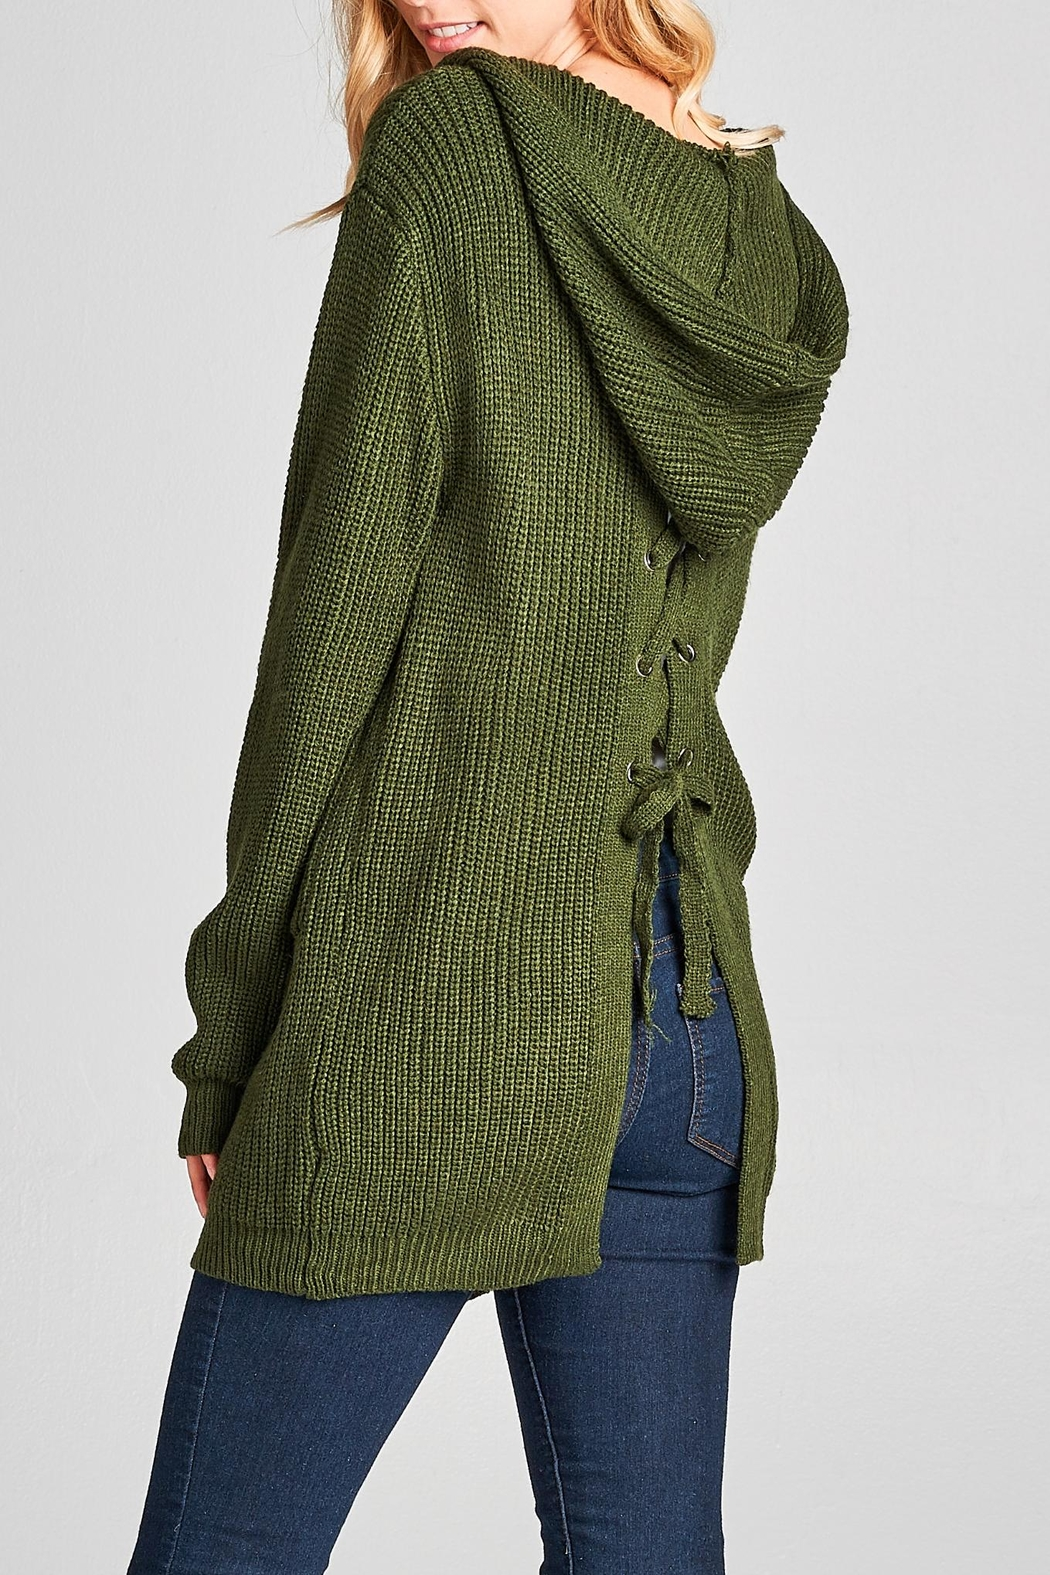 Racine Lace Up Cardigan - Side Cropped Image